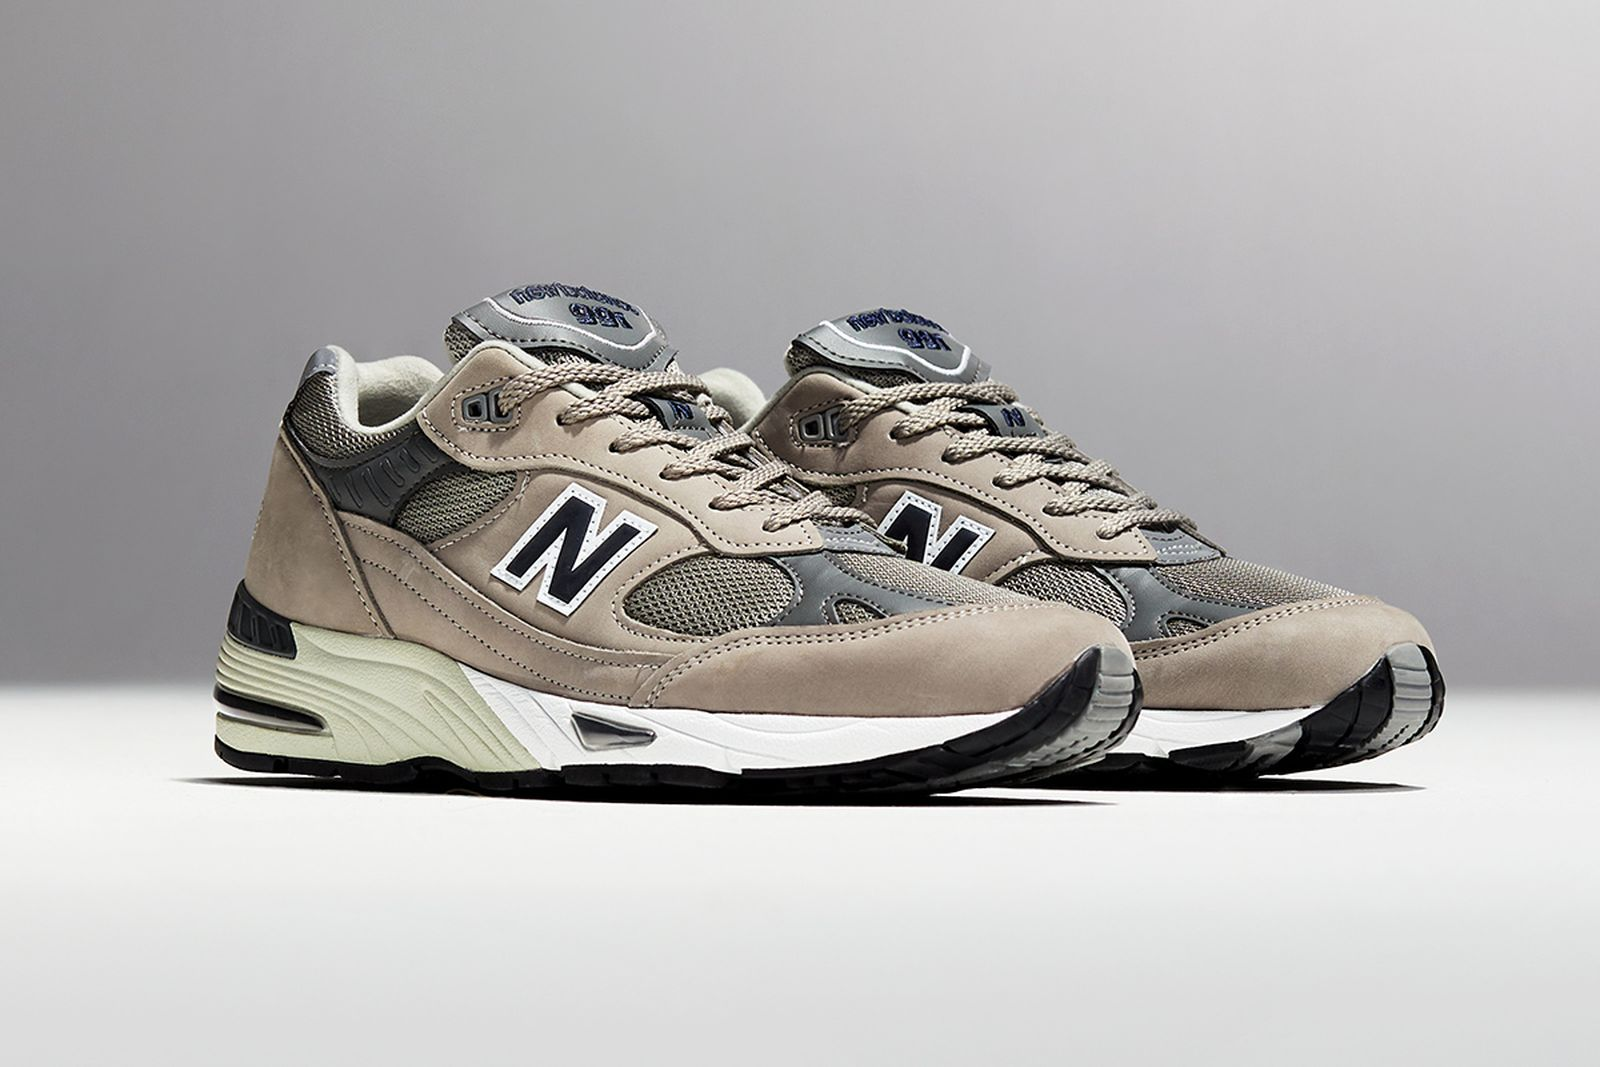 new-balance-991-anniversary-pack-release-date-price-01